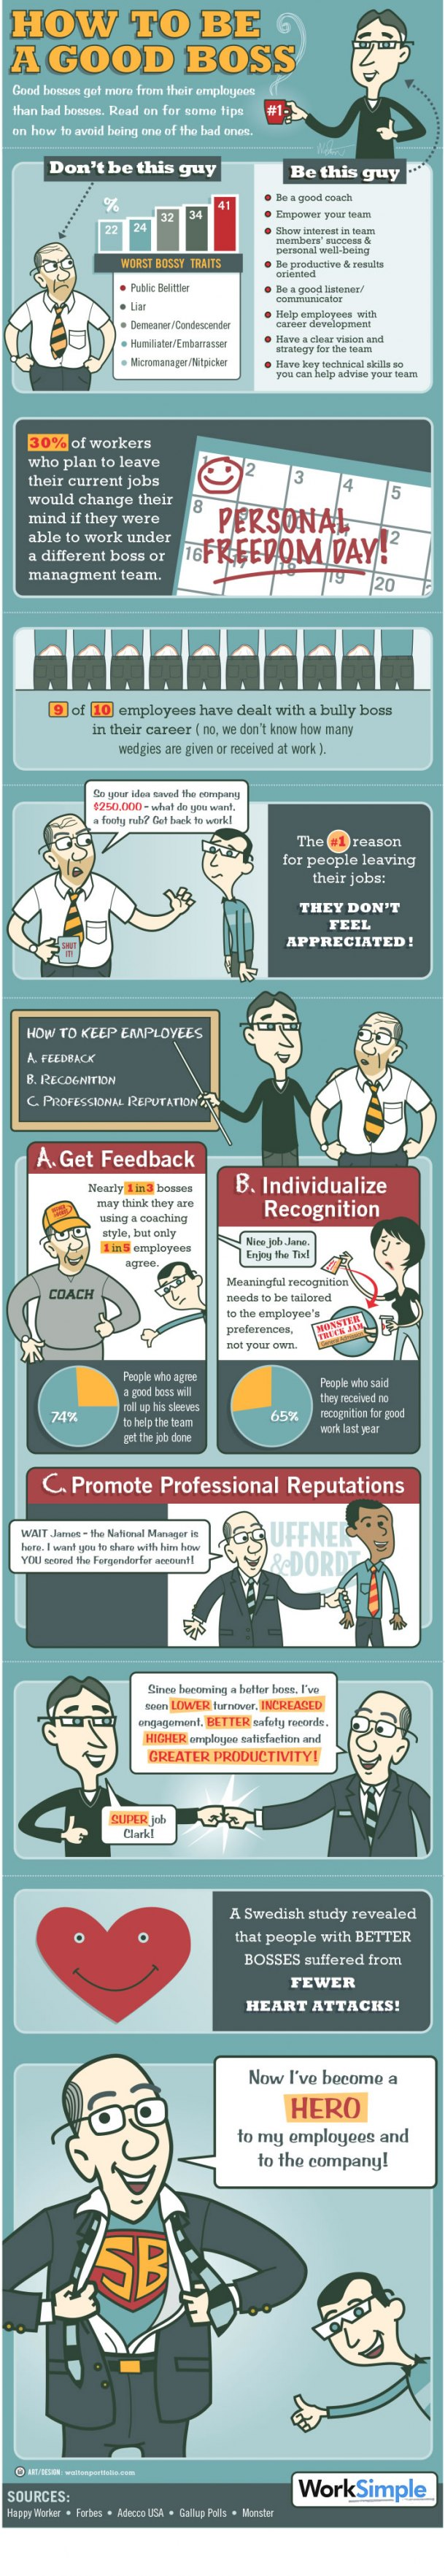 Characteristics of a Great Boss